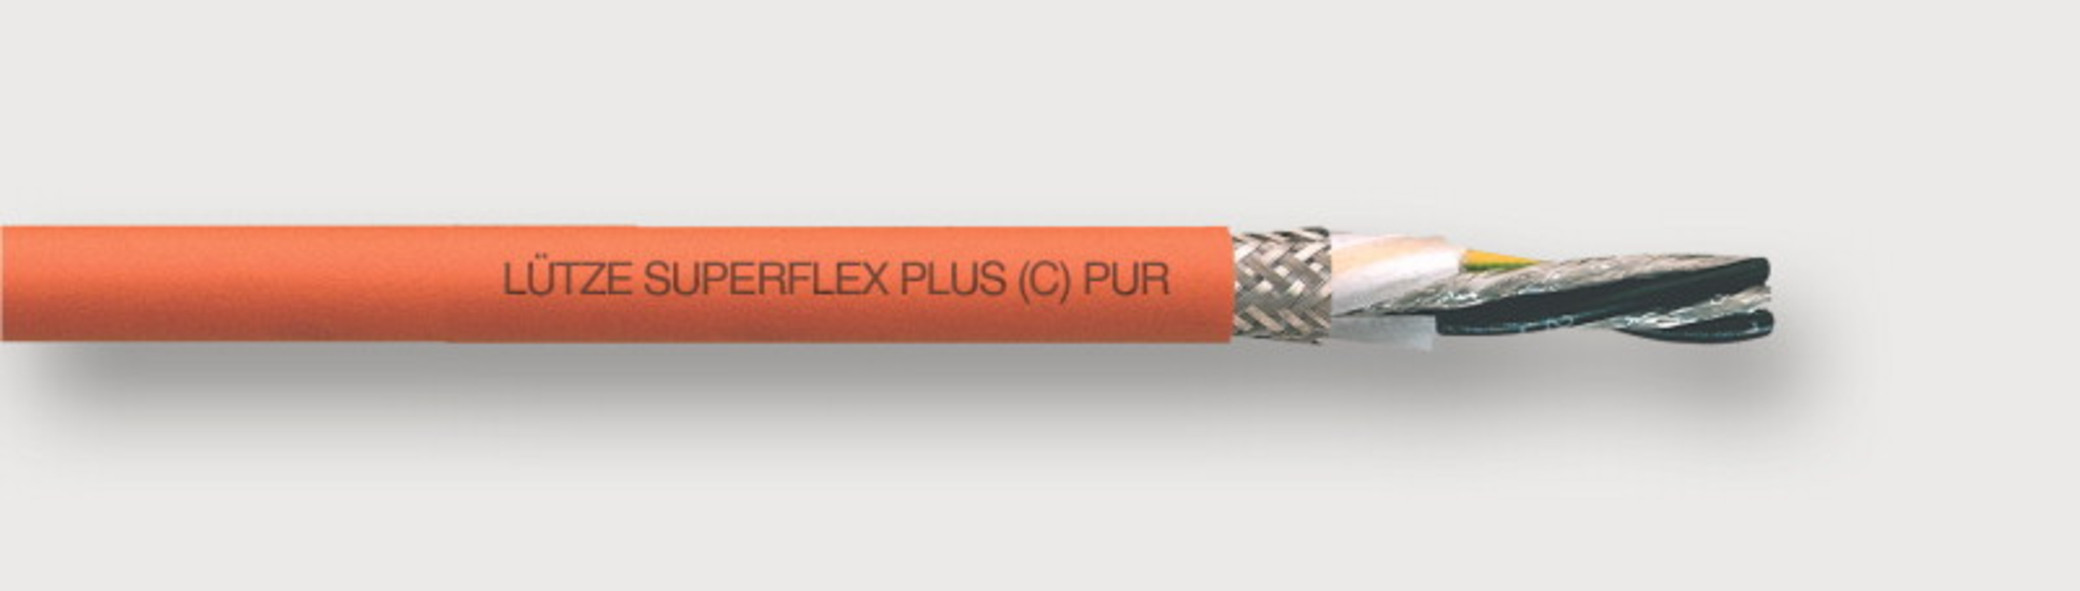 111998 - LÜTZE SUPERFLEX® PLUS M (C) PUR SERVO 0.6/1 kV Supply line for Bosch Rexroth and other systems For highest requirements